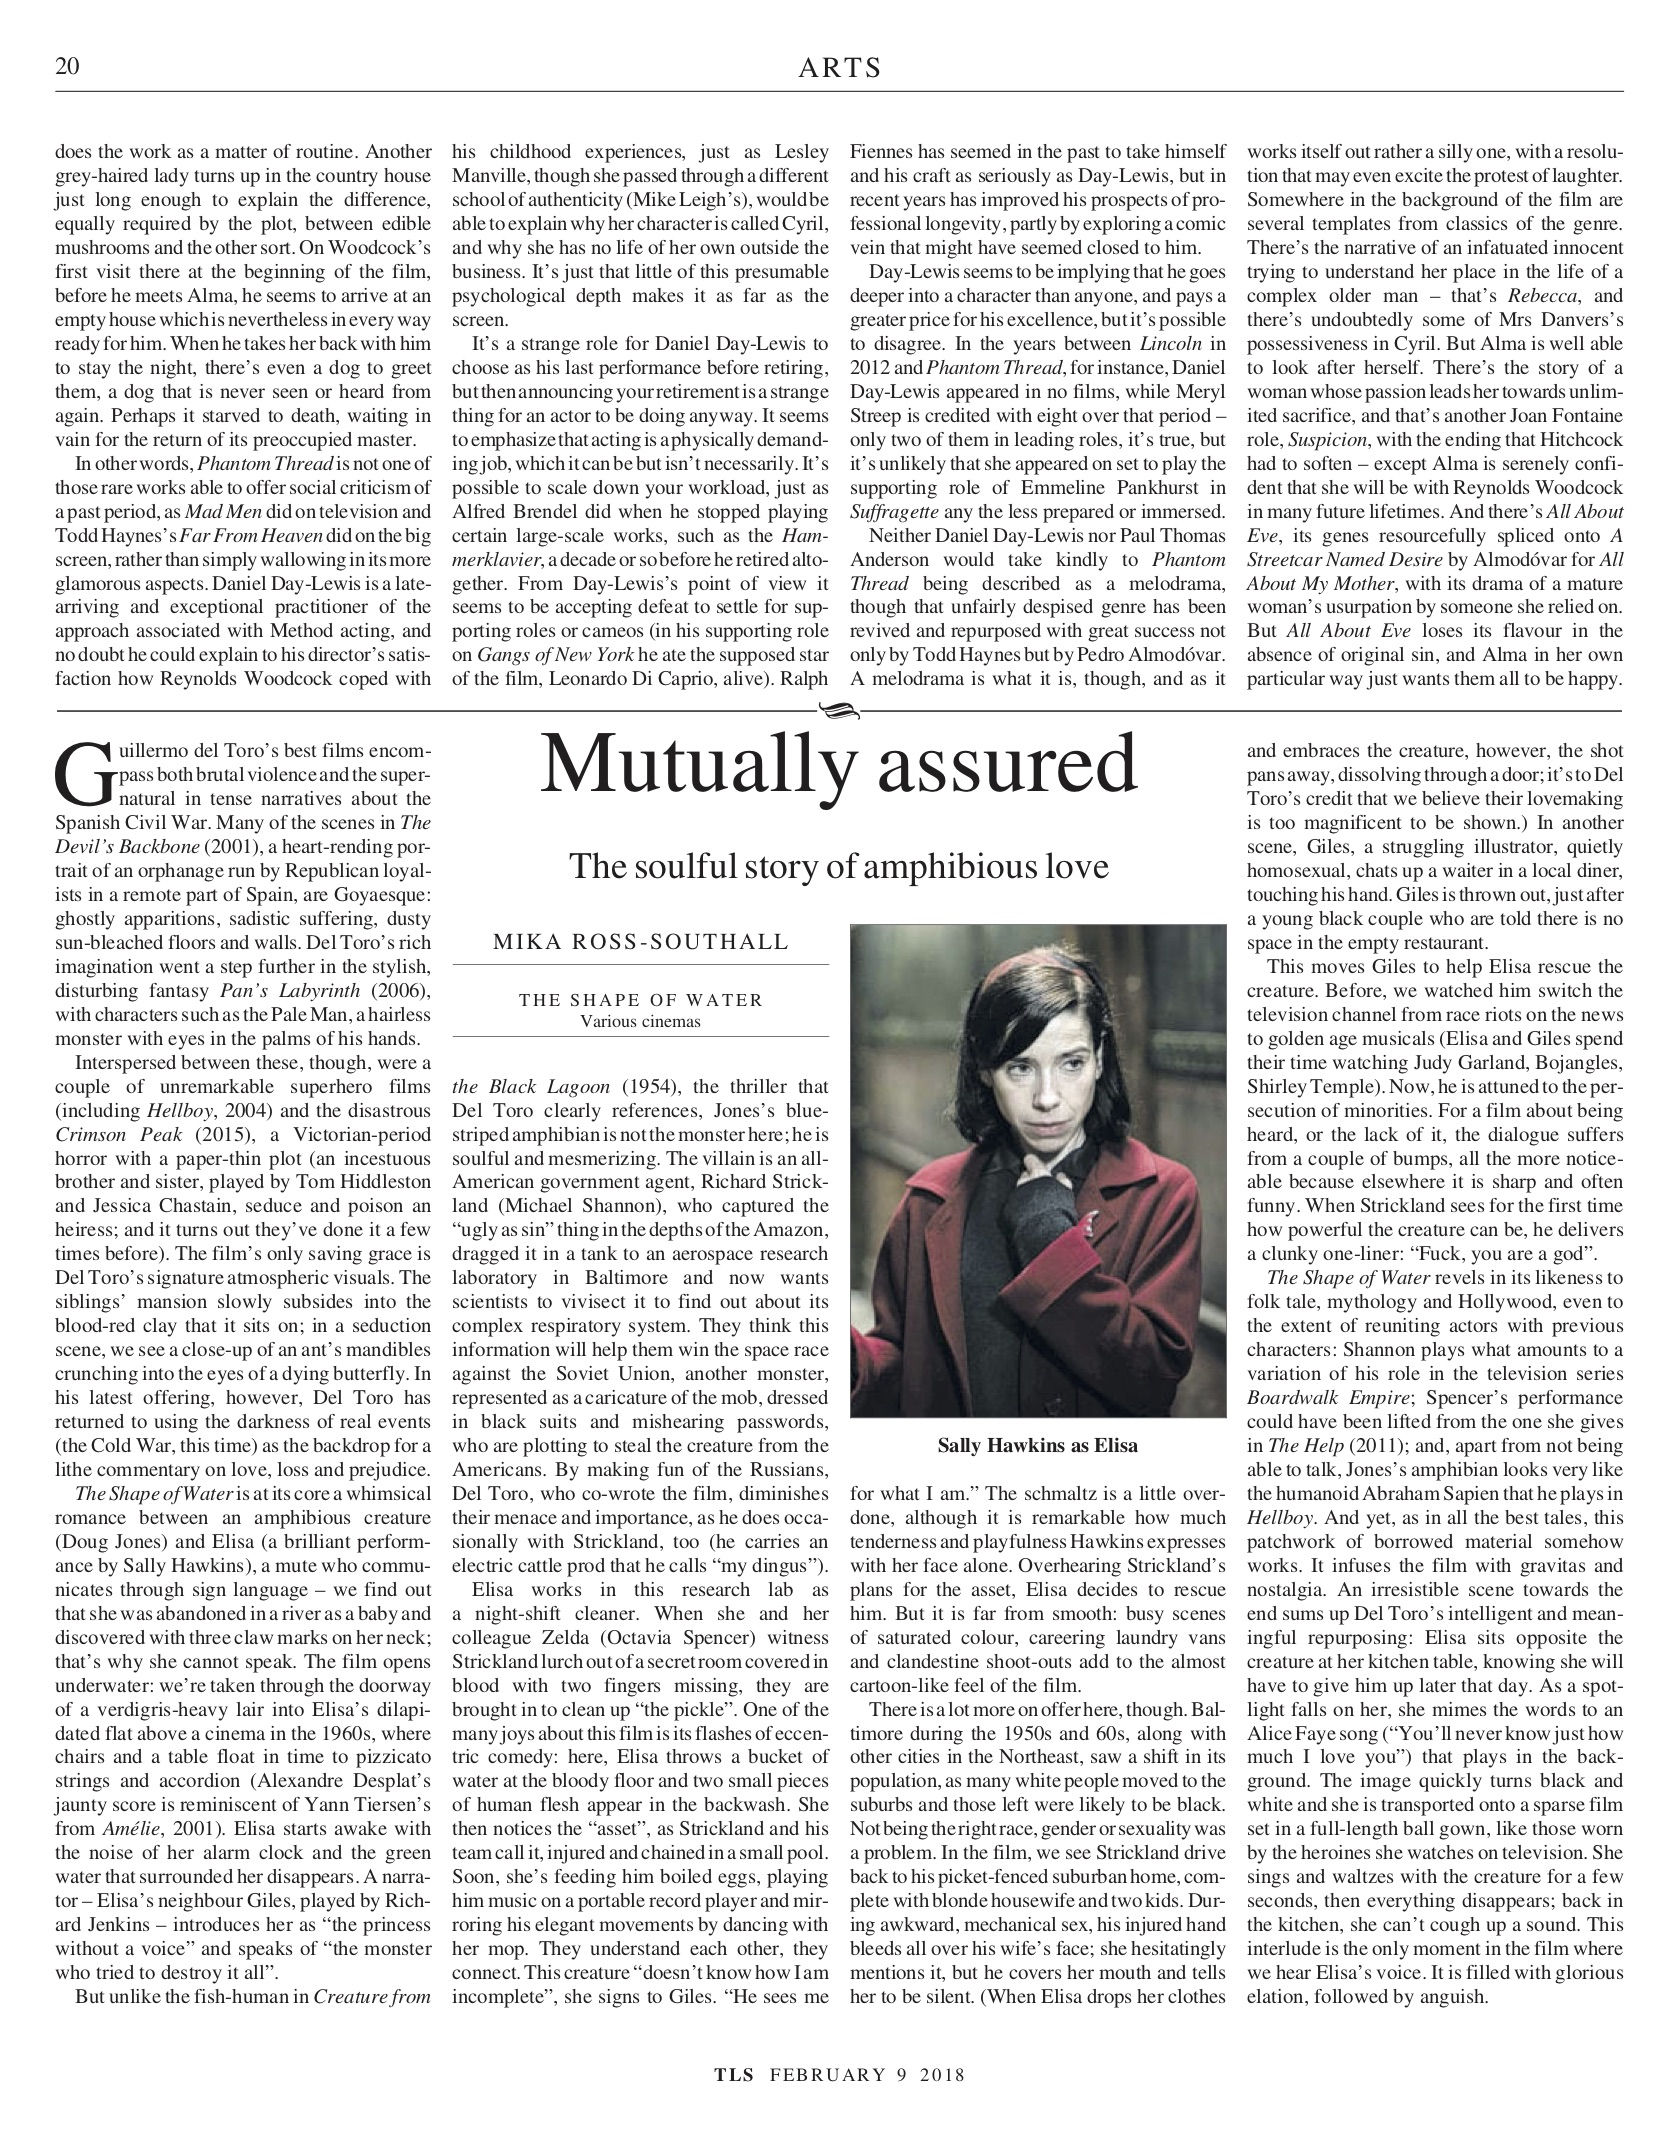 Mutually Assured, Published in the Times Literary Supplement, February 9, 2018